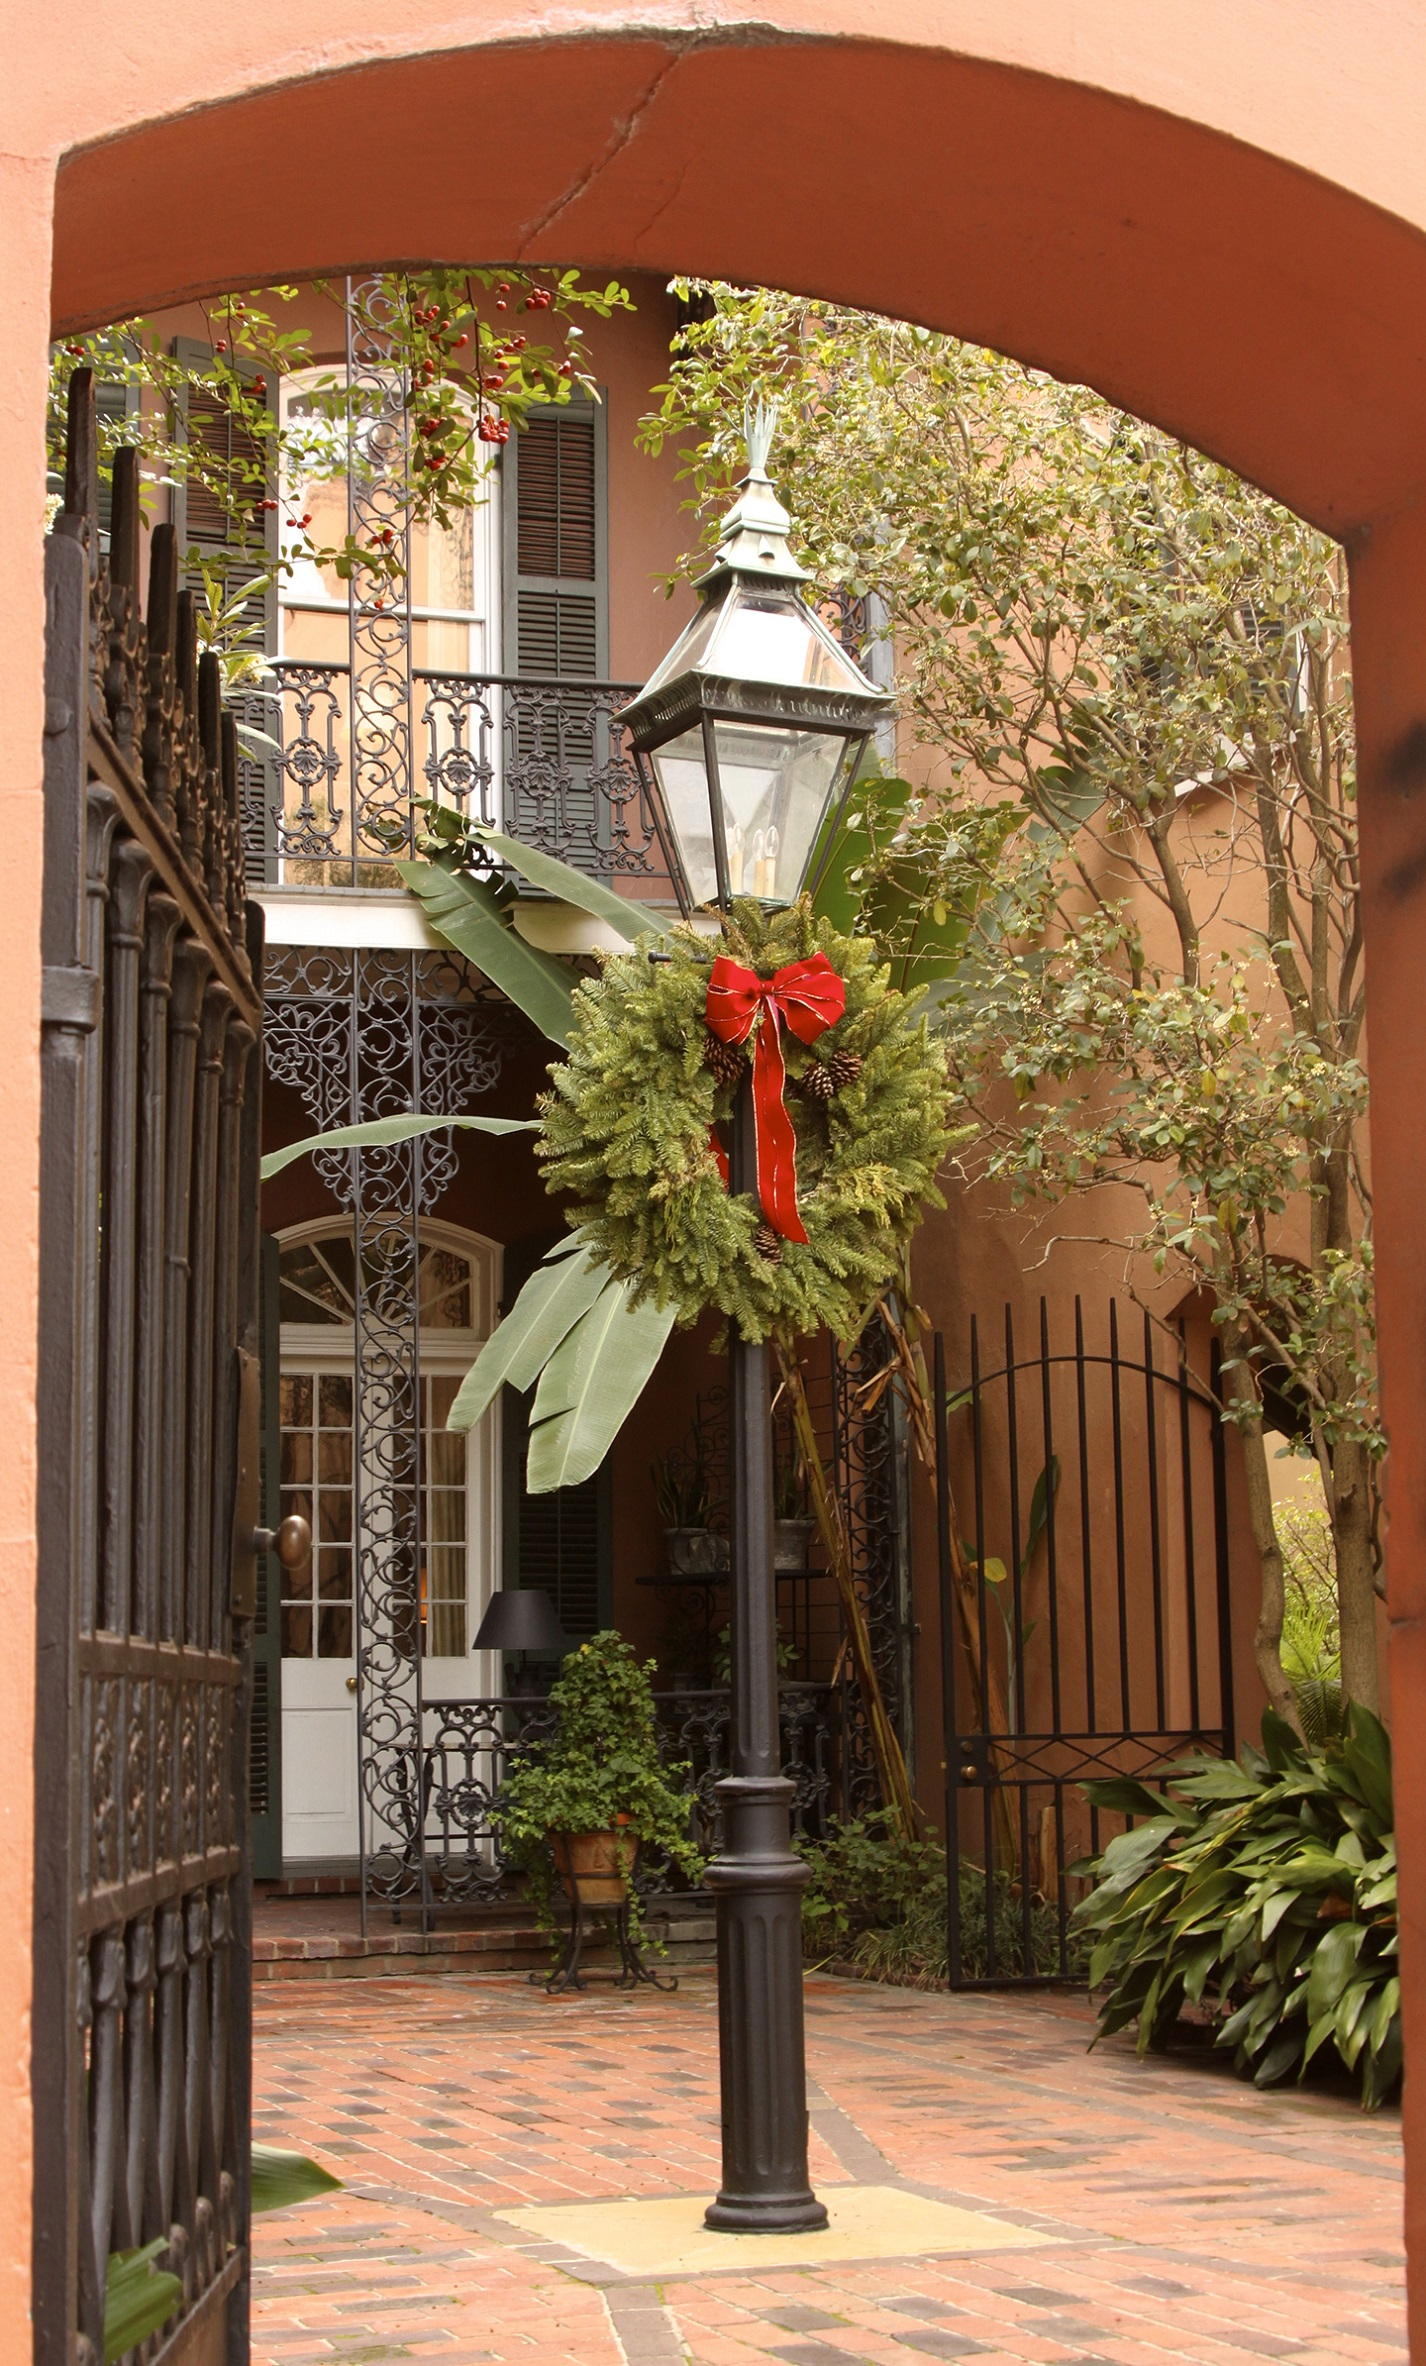 Historic New Orleans Collection's Williams Residence (Photo courtesy of Friends of the Cabildo